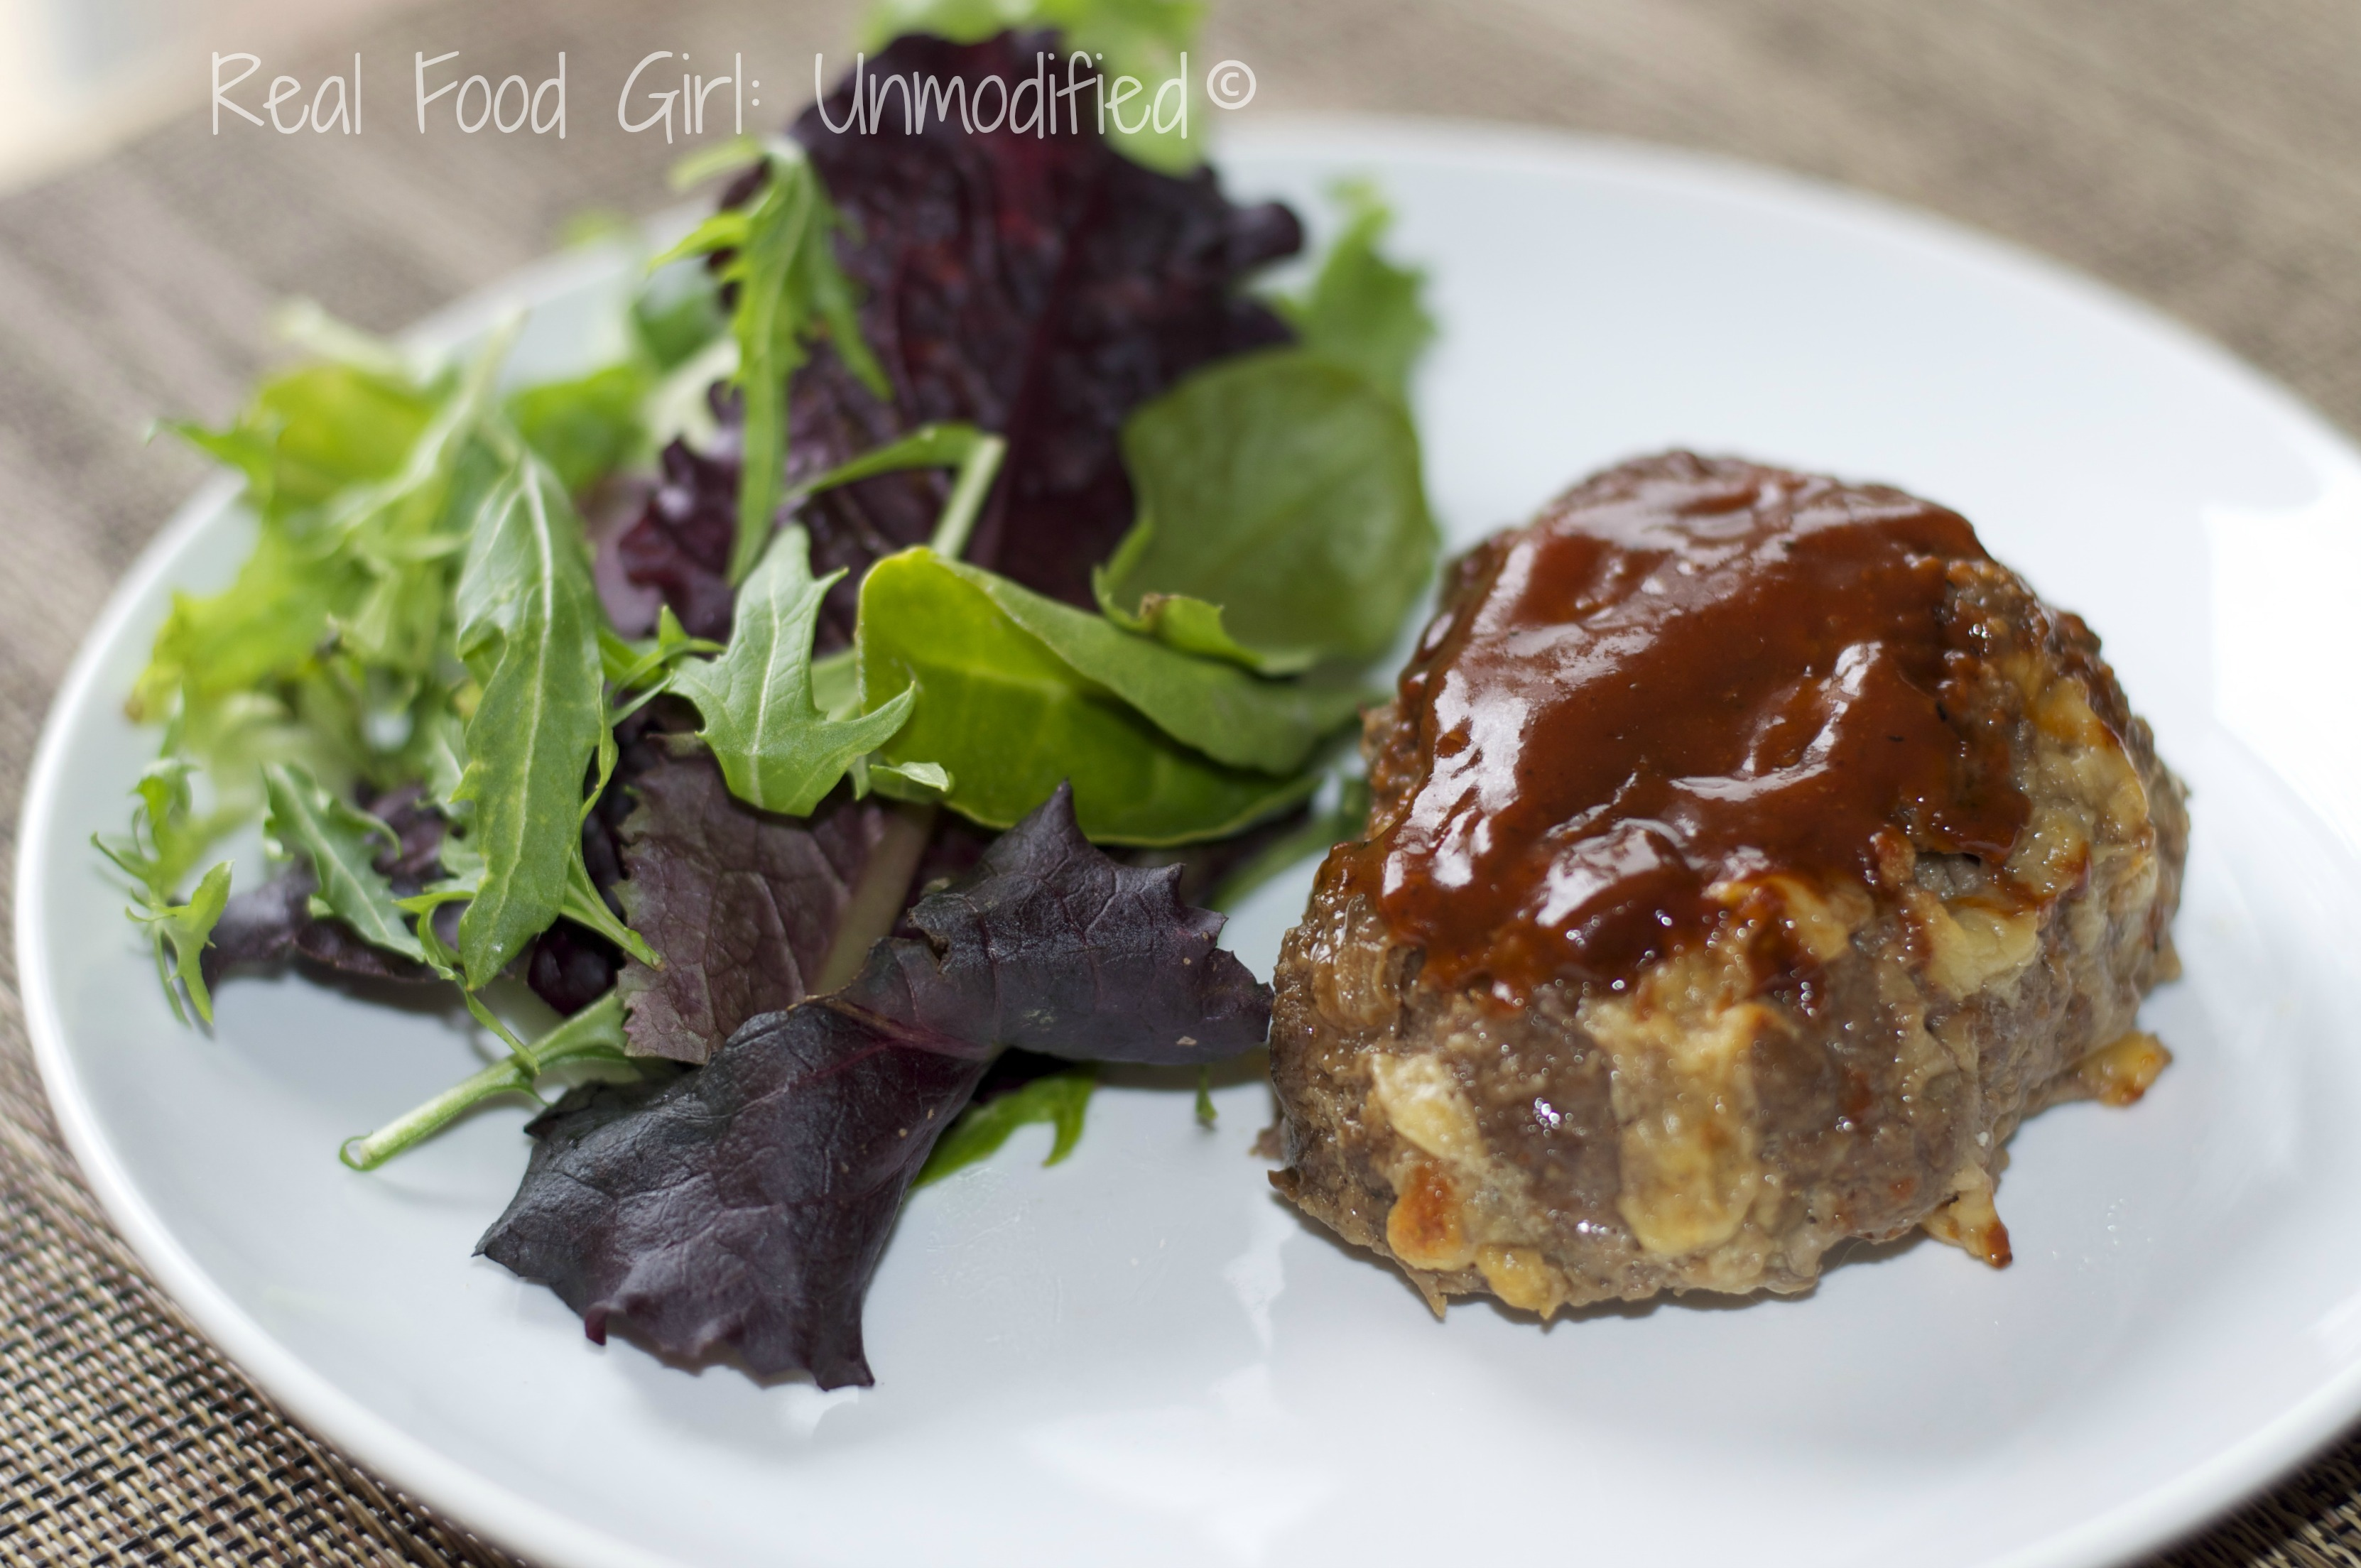 Not yo' Momma's meatloaf! Cheddar-bacon BBQ meatloaves! Organic and GMO-Free. #Real Food Girl: Unmodified